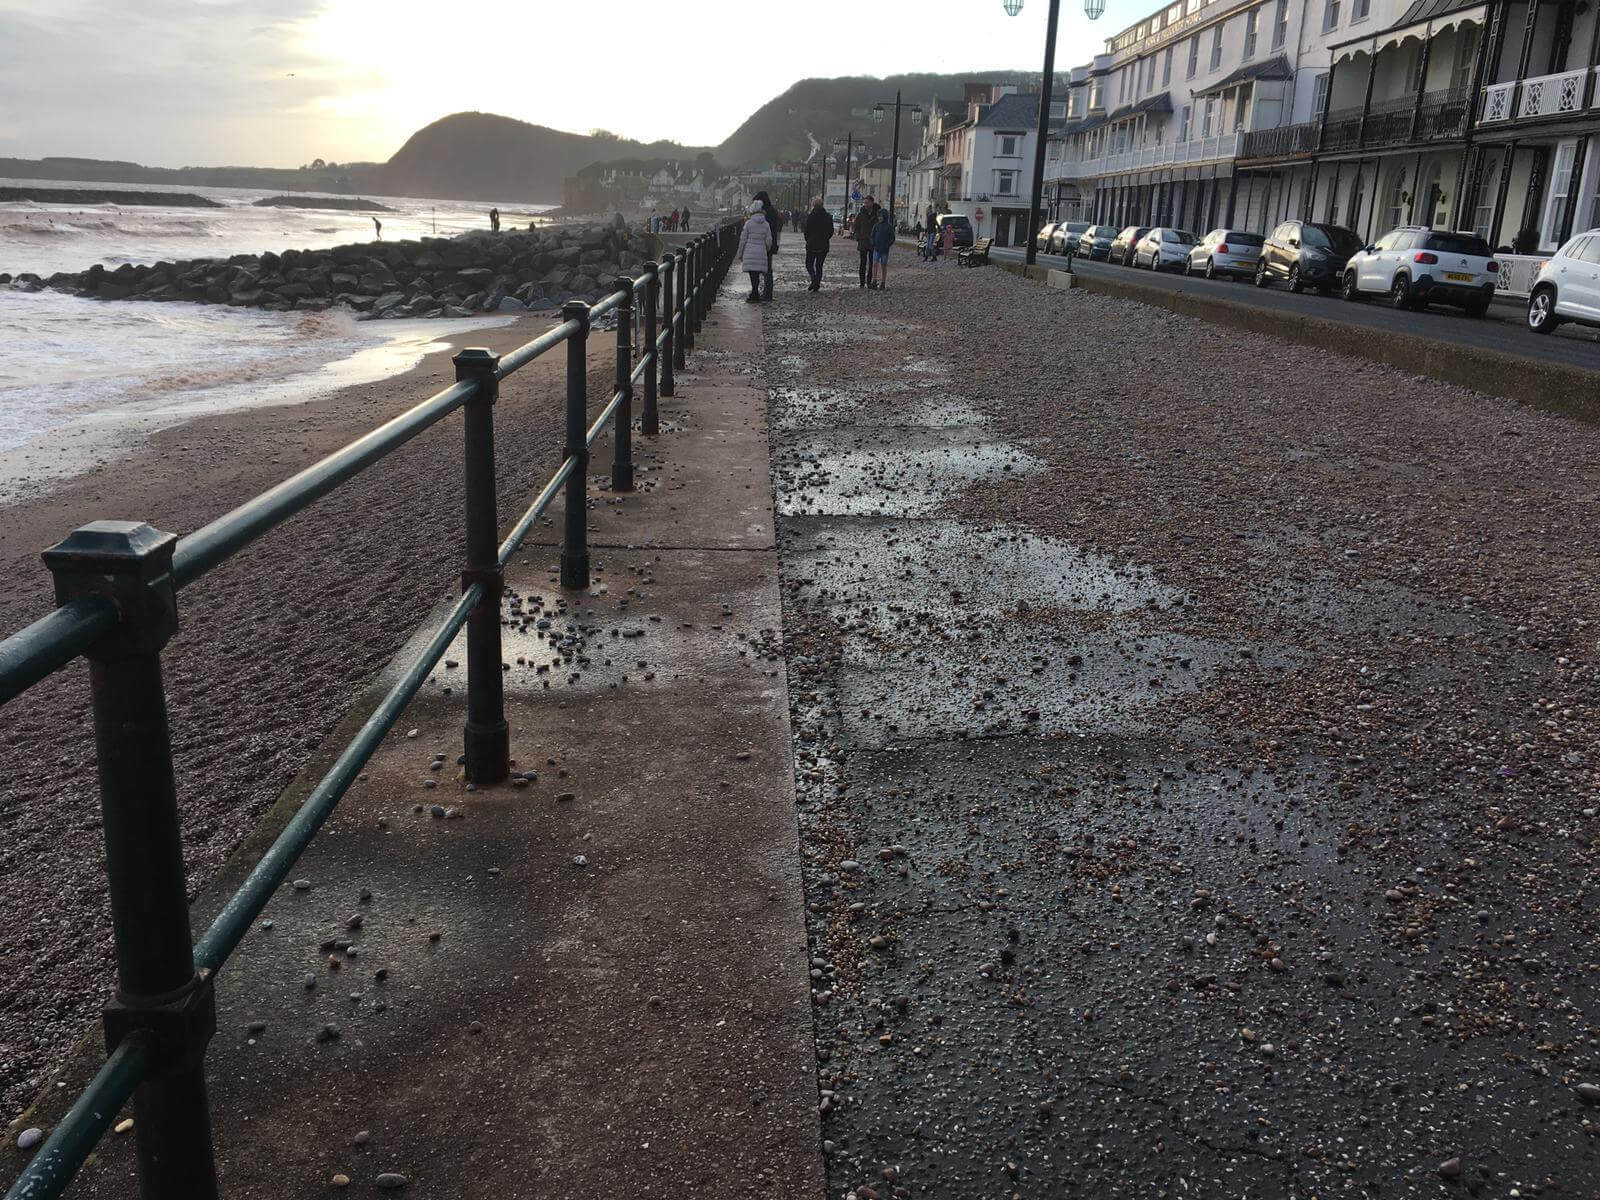 The glass sea wall on Sidmouth seafront during Storm Dennis. Image: Daniel Clark